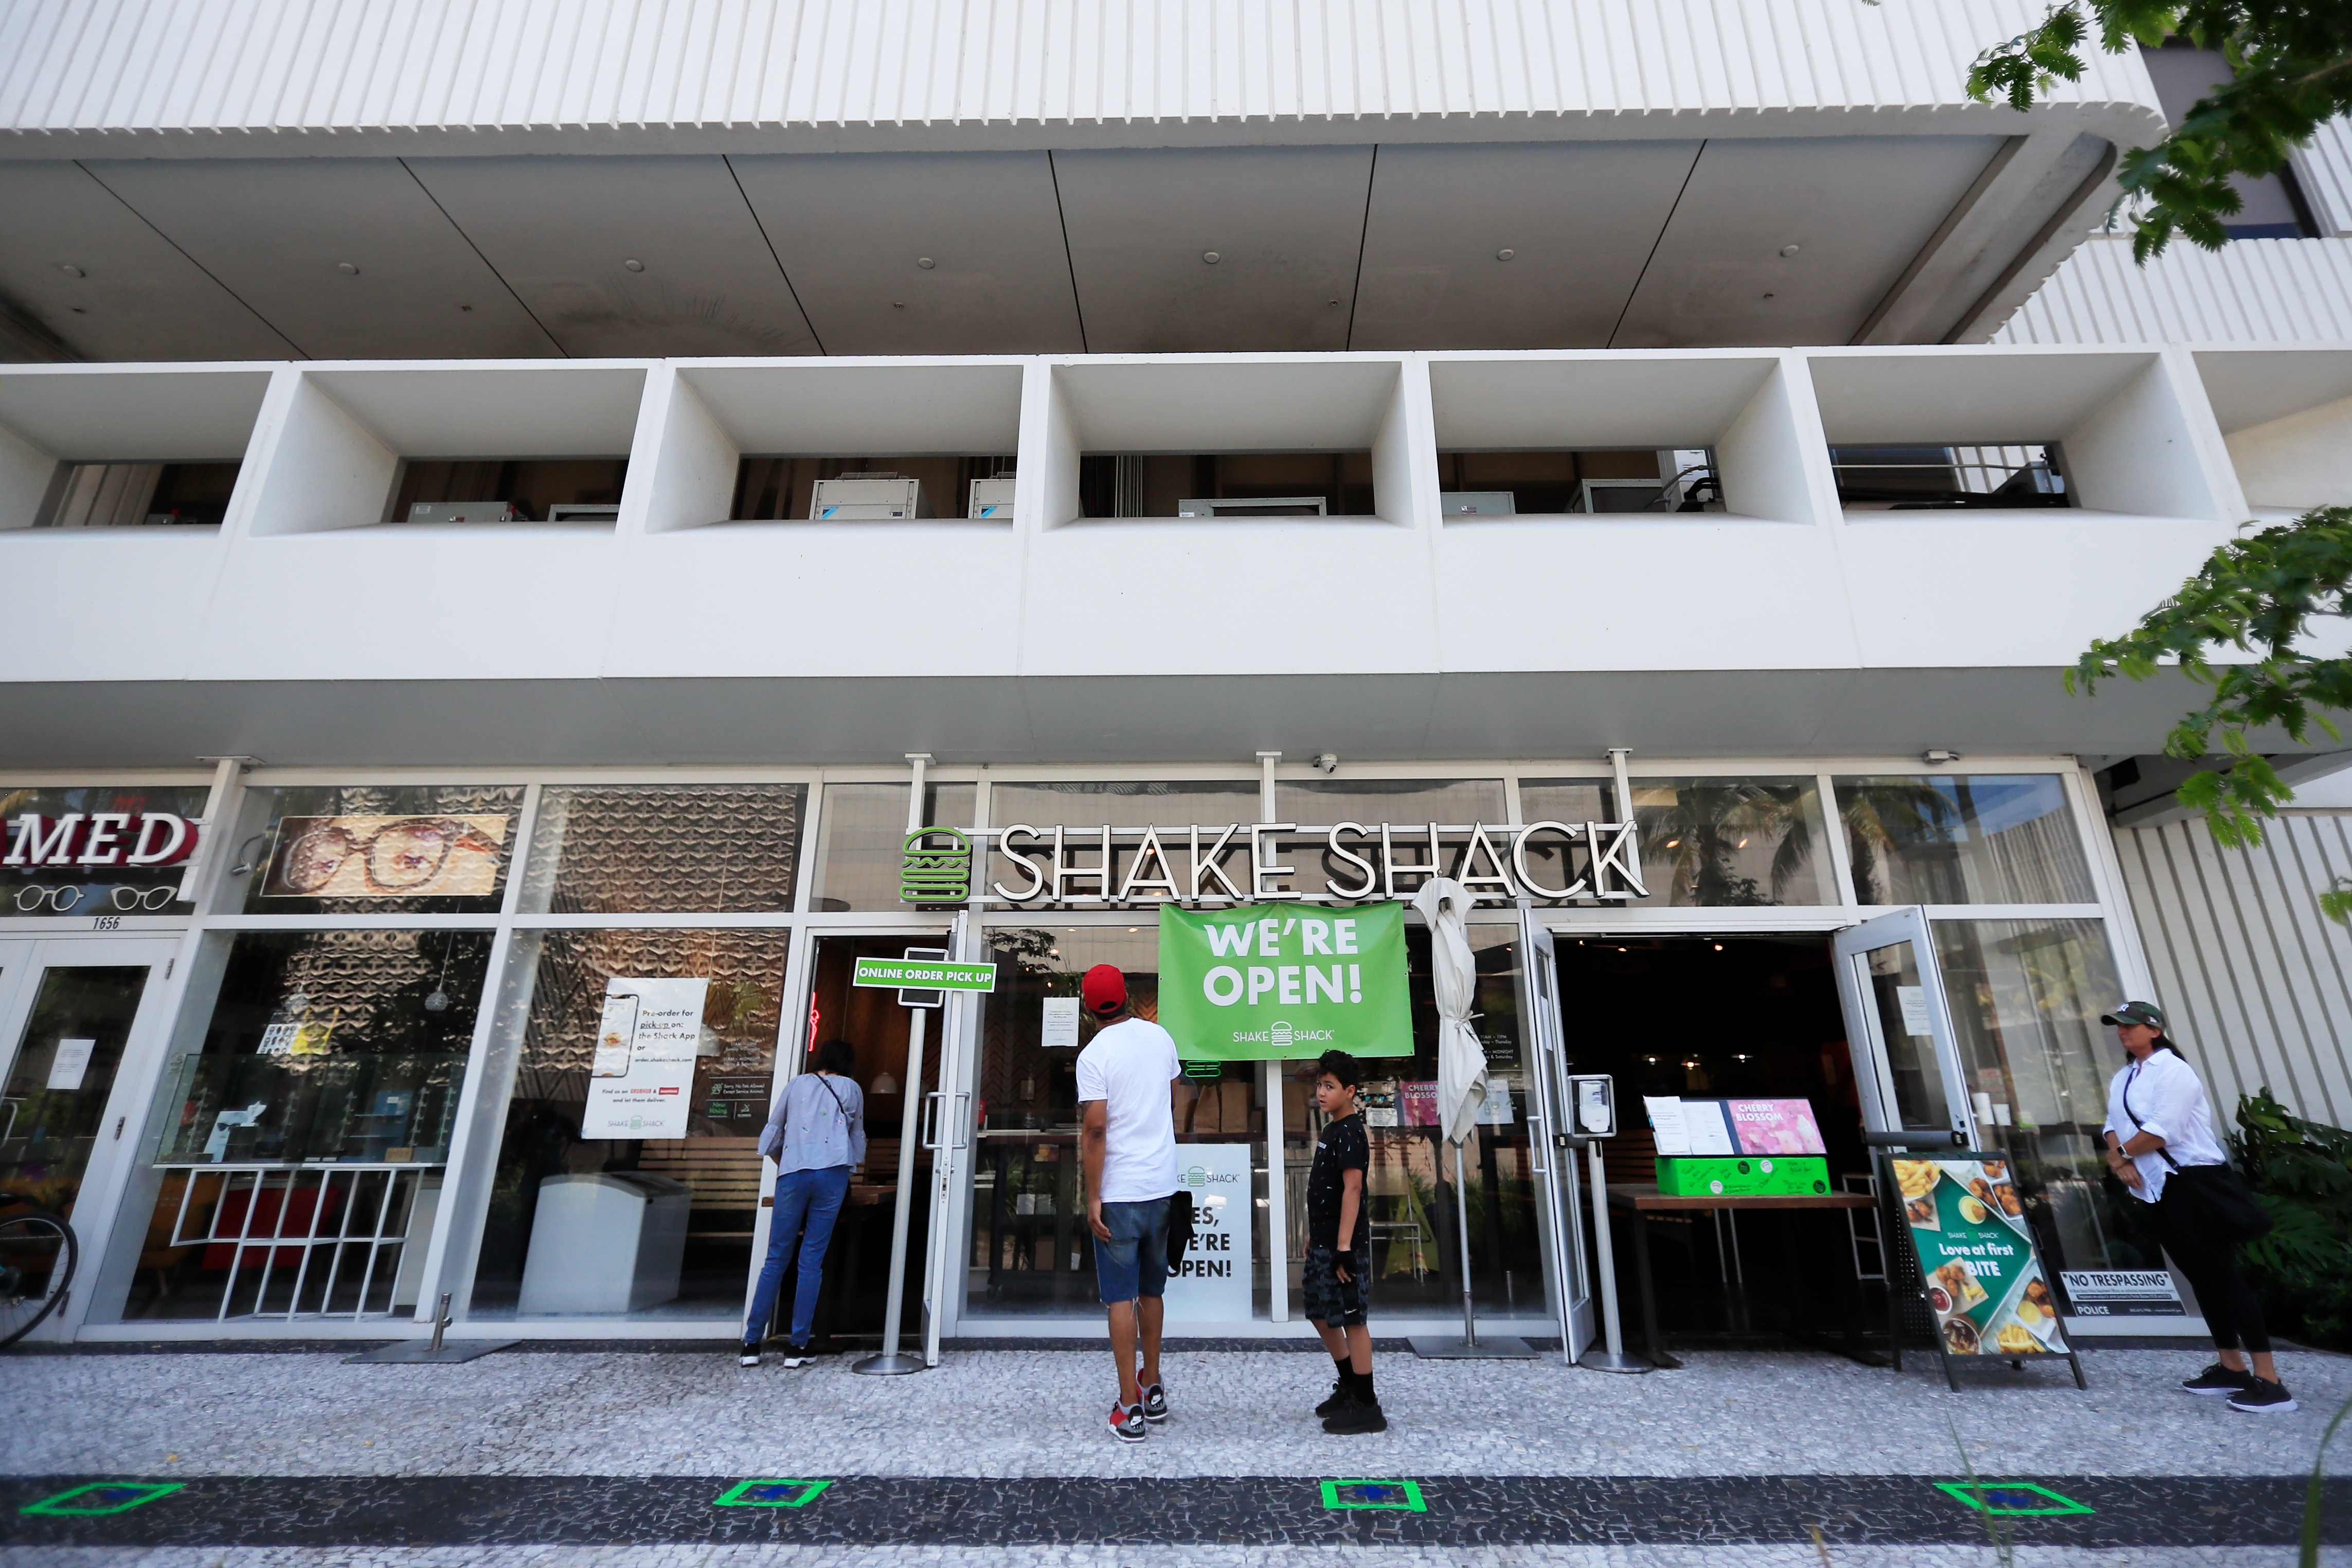 Customers wait for to-go orders outside Shake Shack in Miami Beach, Florida on April 19.